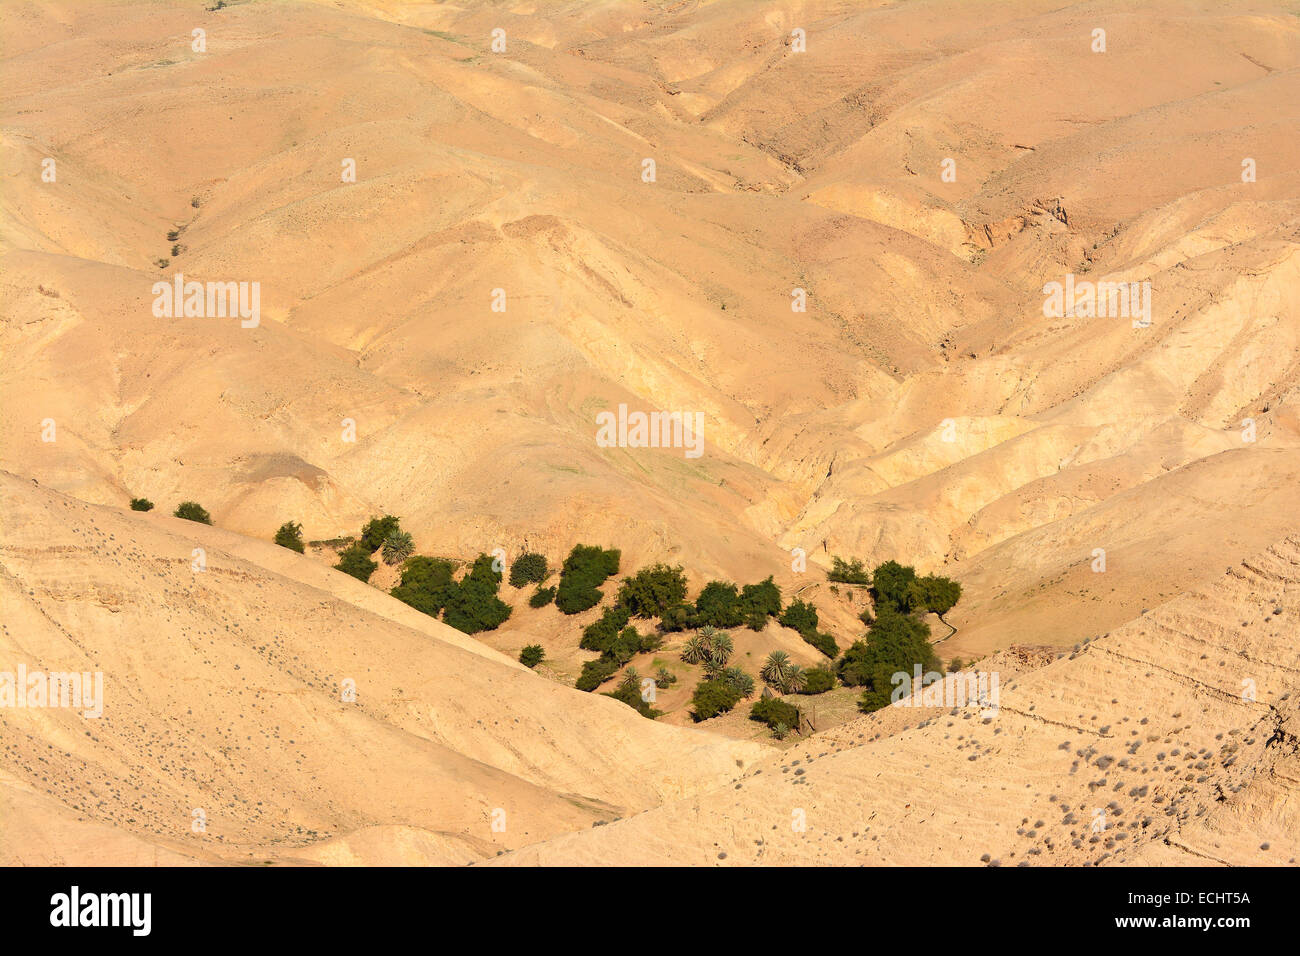 Oasis in the desert - Stock Image